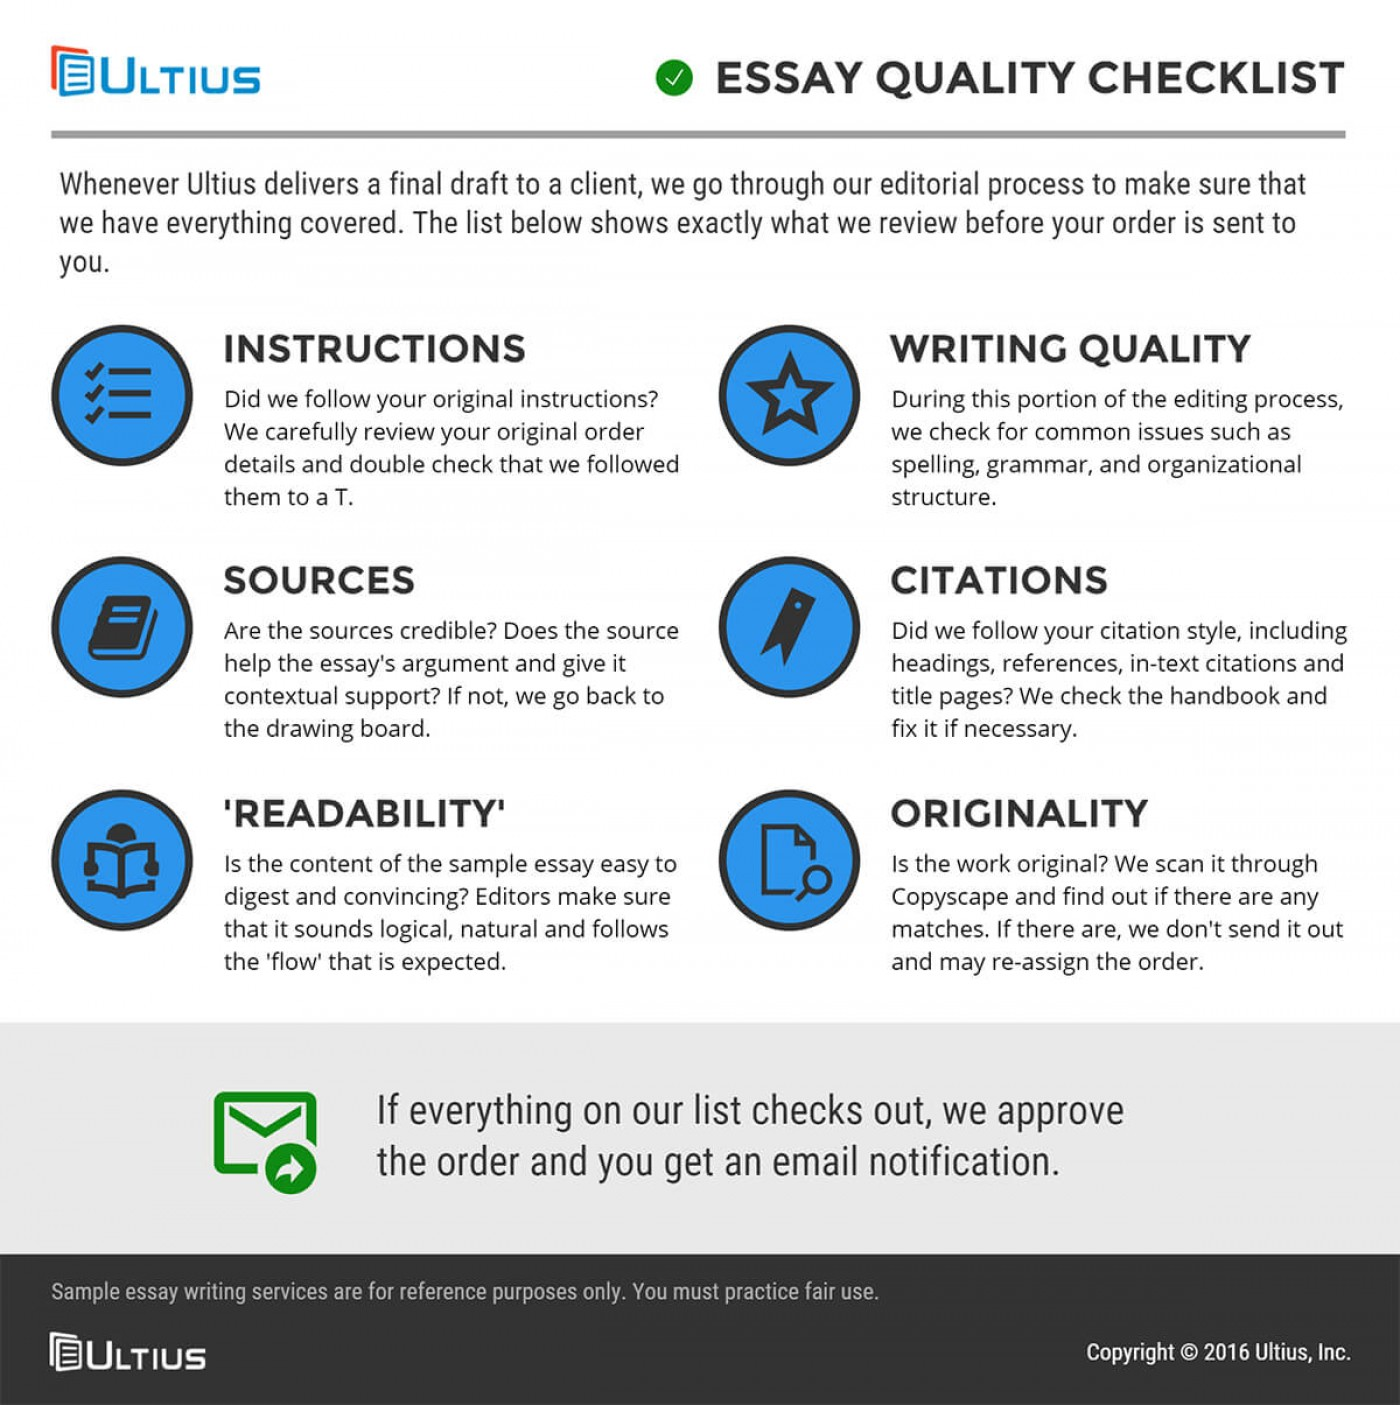 014 Essay Example Purchased Quality Checklist Dreaded Persuasive Speech Topics For Elementary Outline Rubric 10th Grade 1400